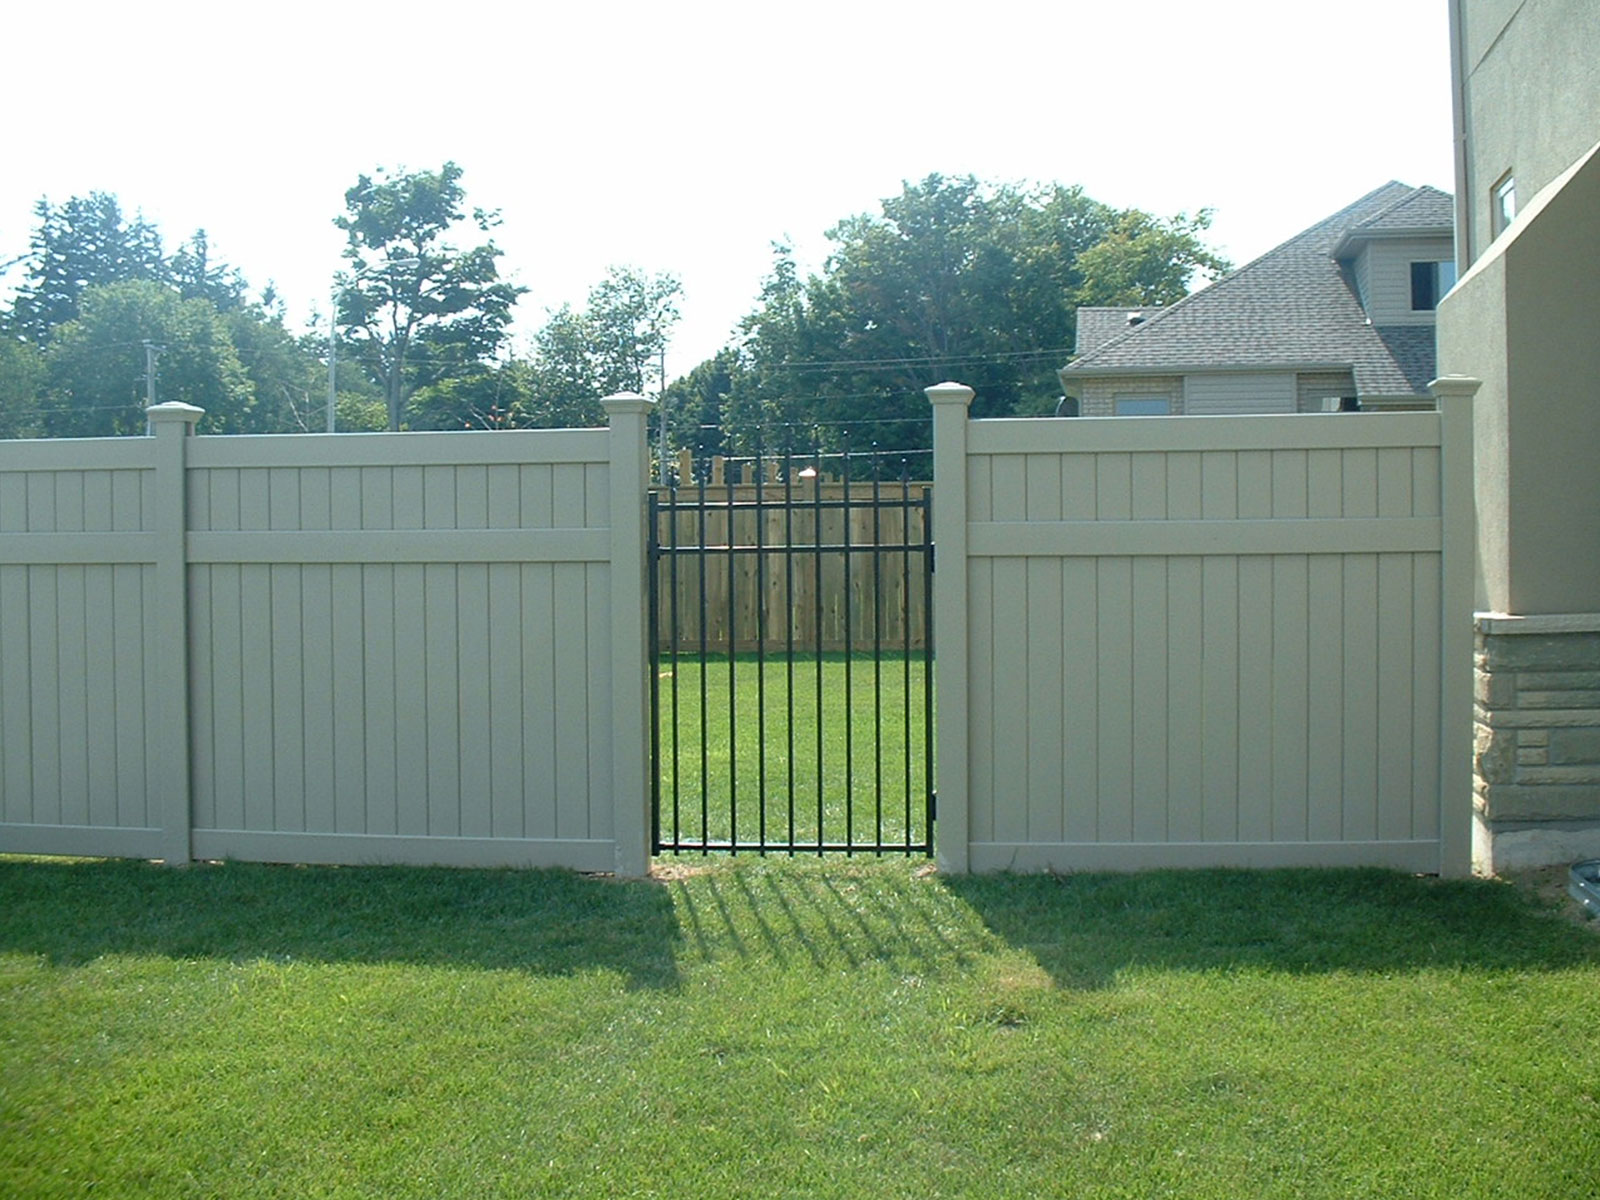 Vinyl Fencing - Ornamental Iron Gate